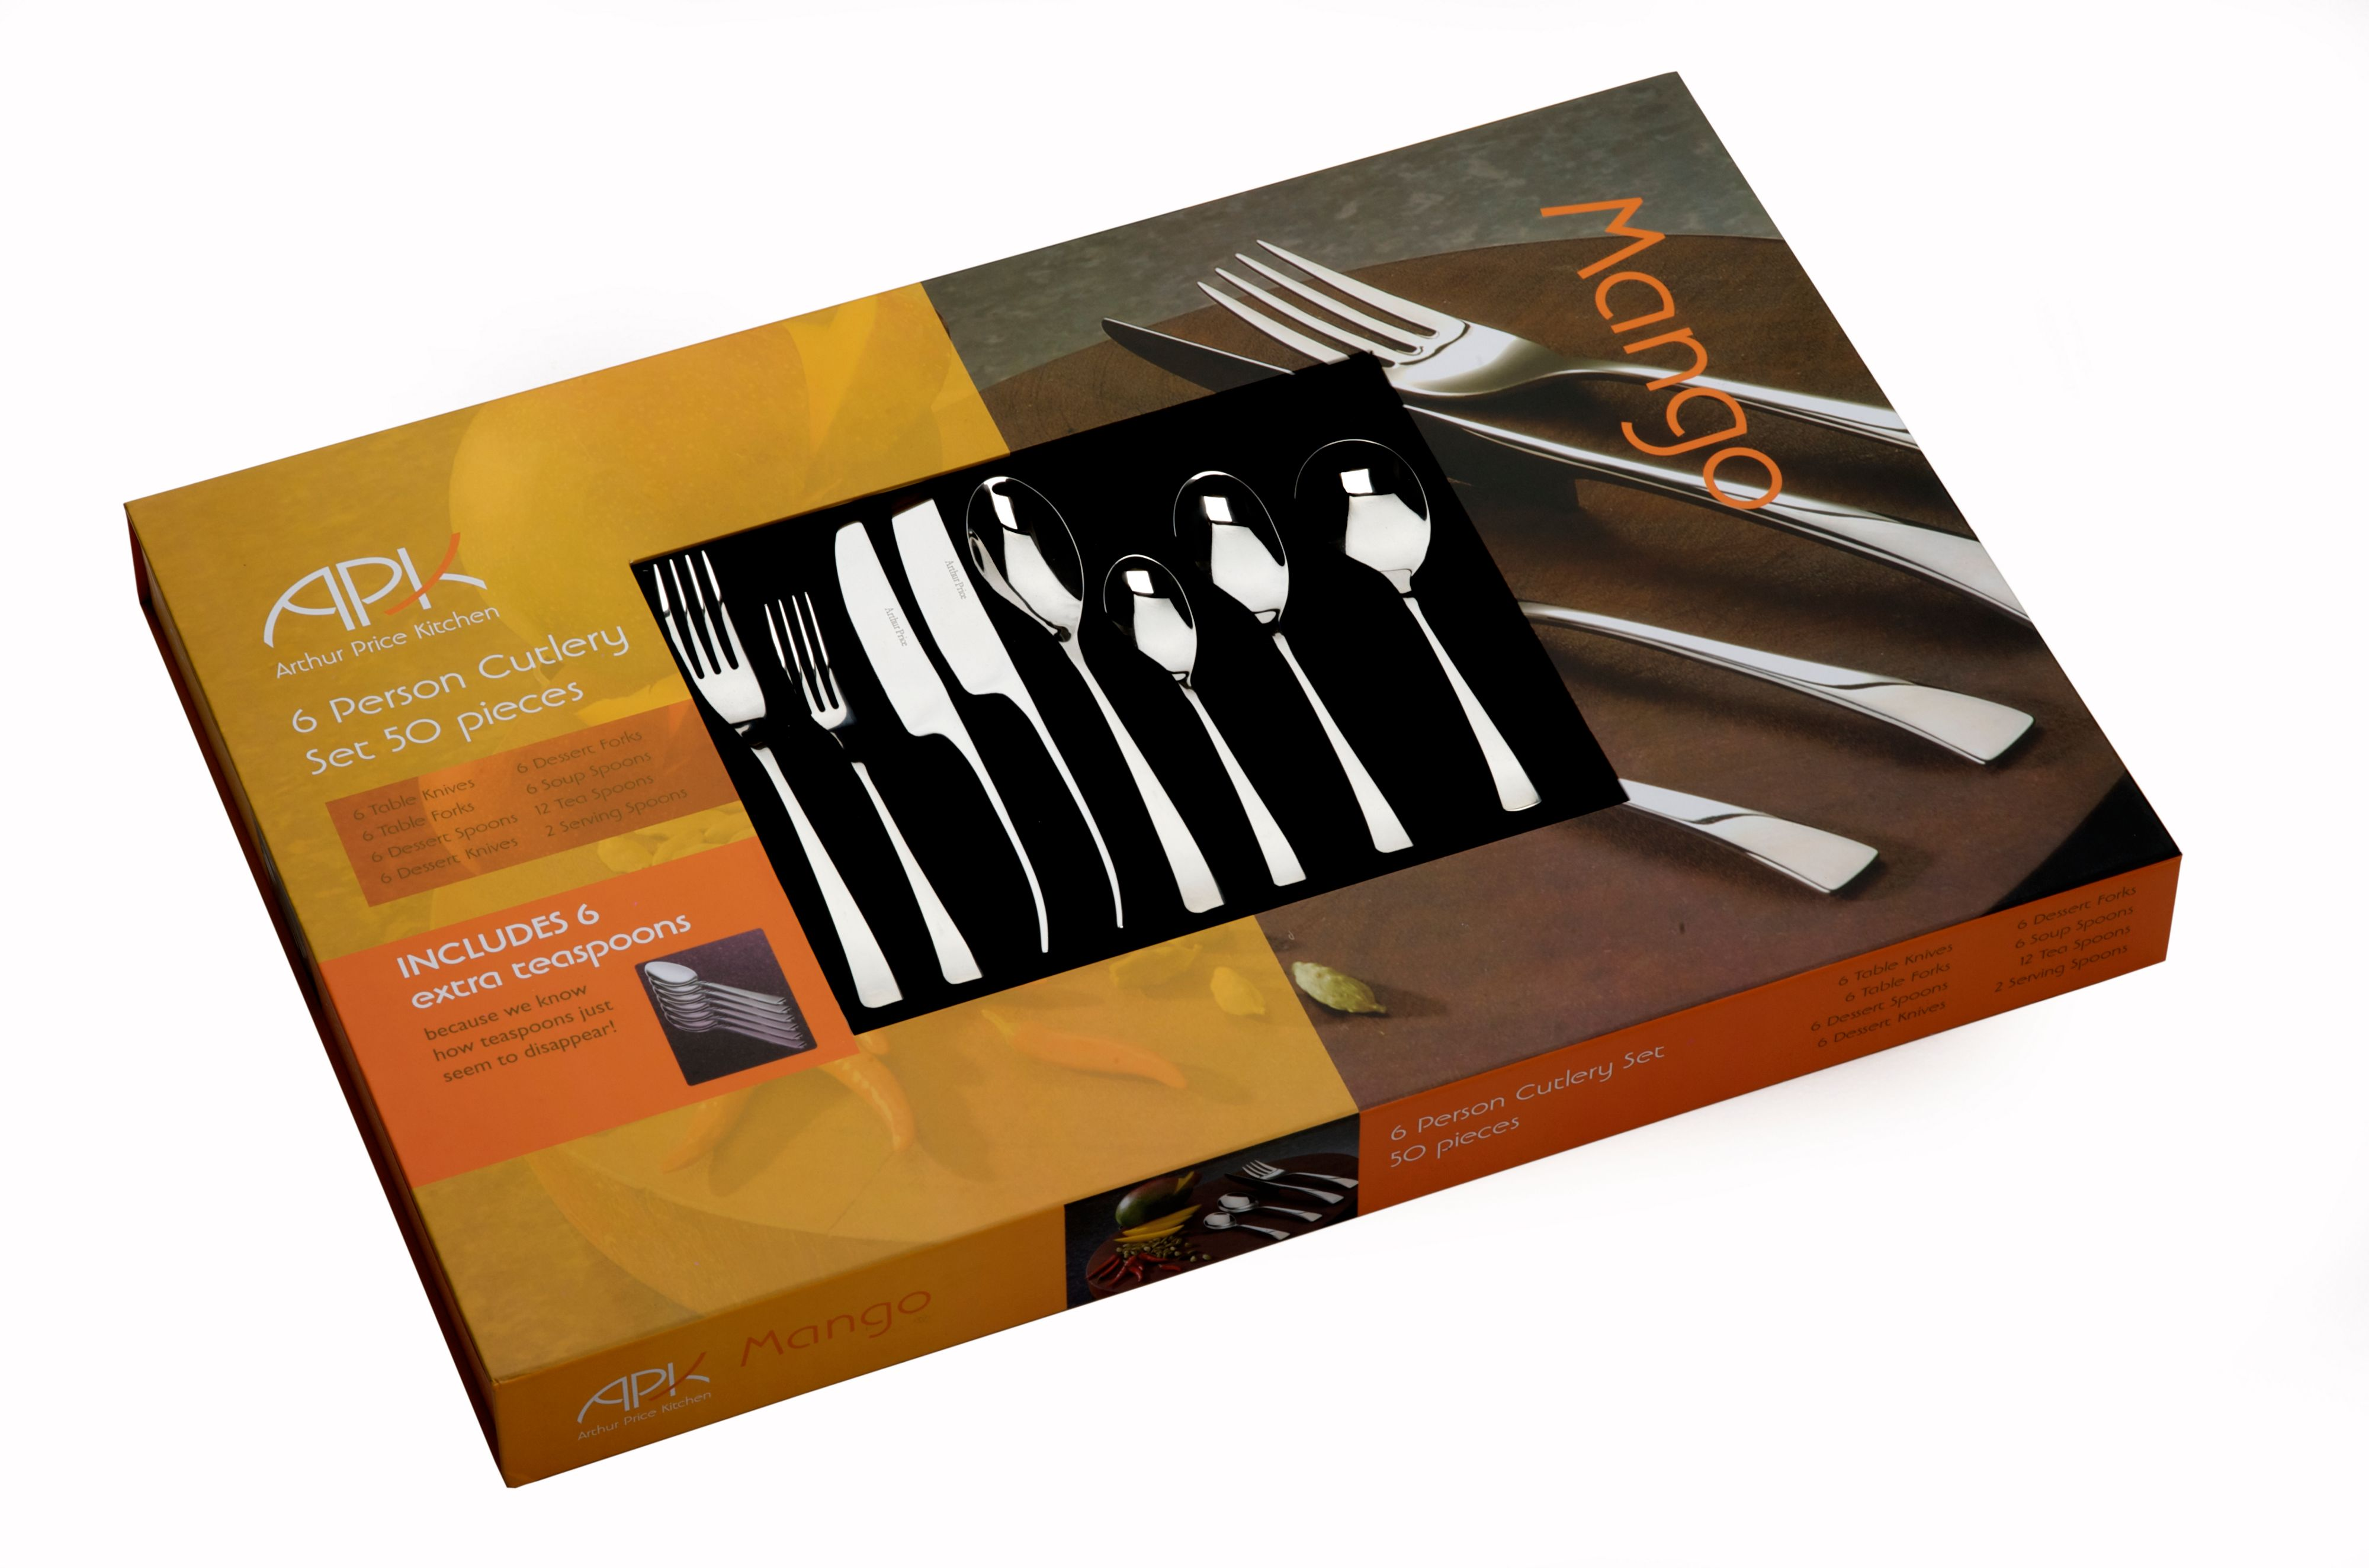 50 piece 6 person cutlery boxed set